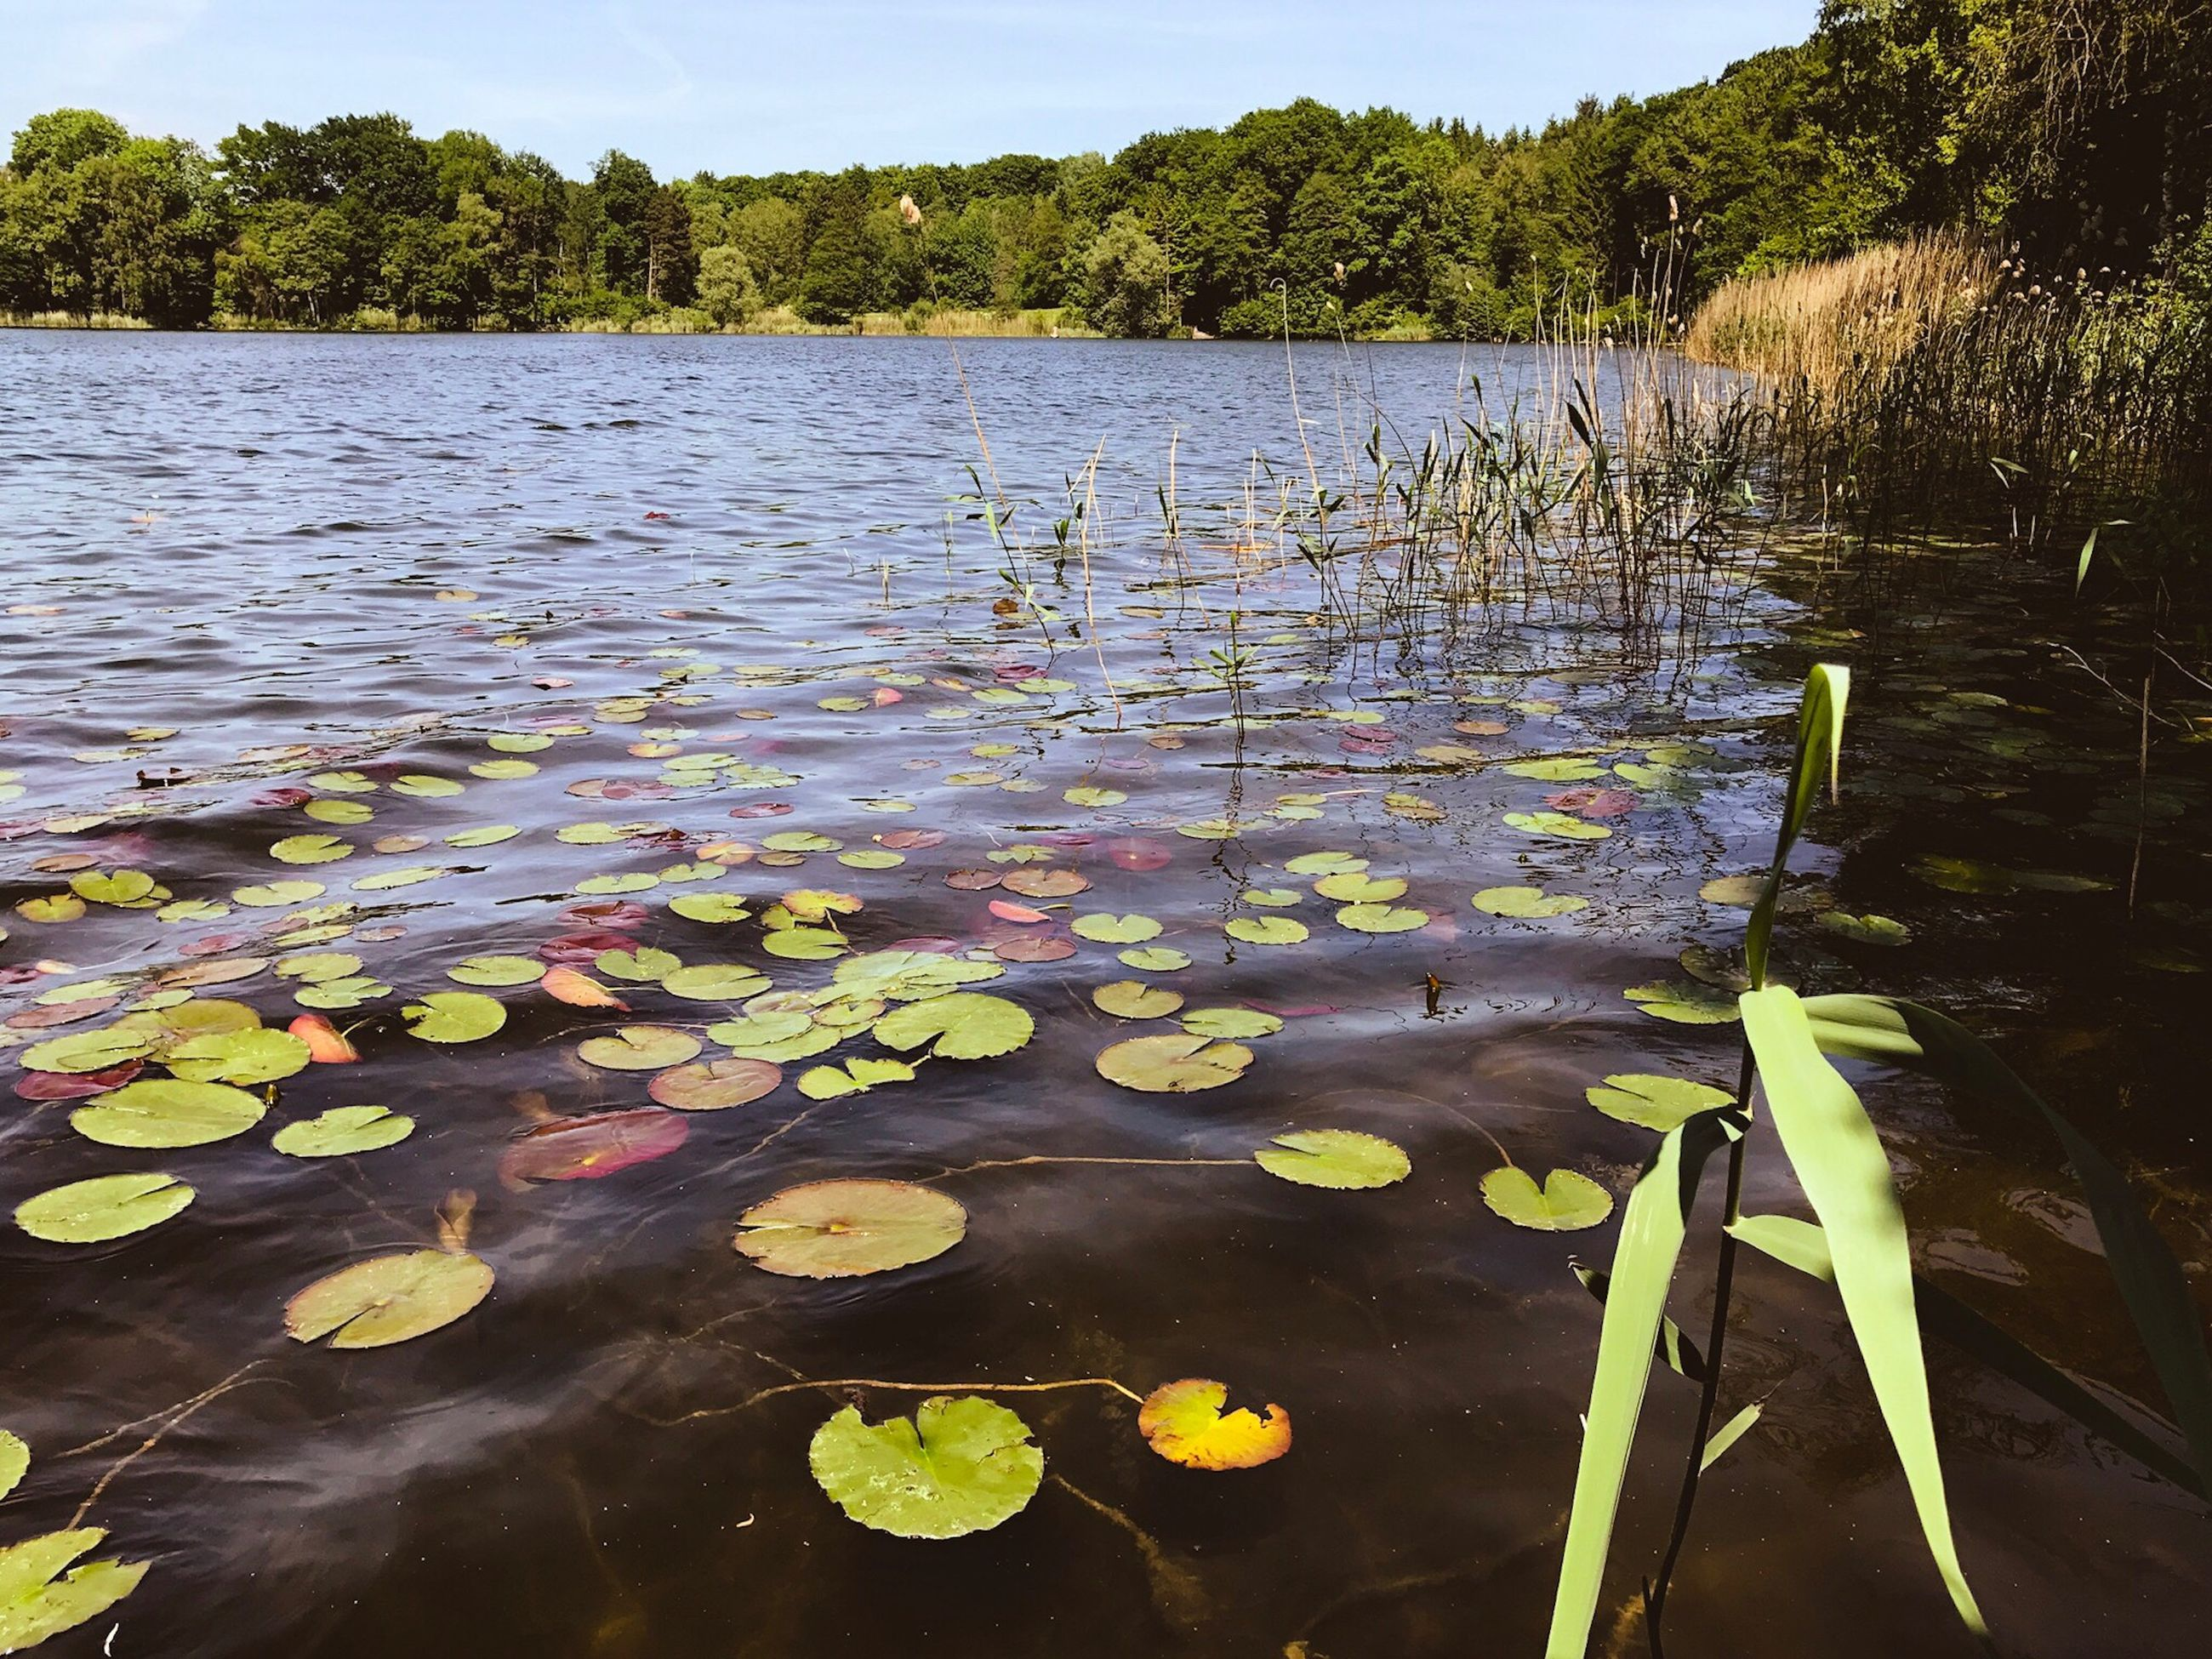 water, lake, nature, lily pad, floating on water, leaf, water lily, beauty in nature, tranquility, growth, lotus water lily, no people, plant, floating, outdoors, day, reflection, flower, water plant, lotus, scenics, fragility, tree, freshness